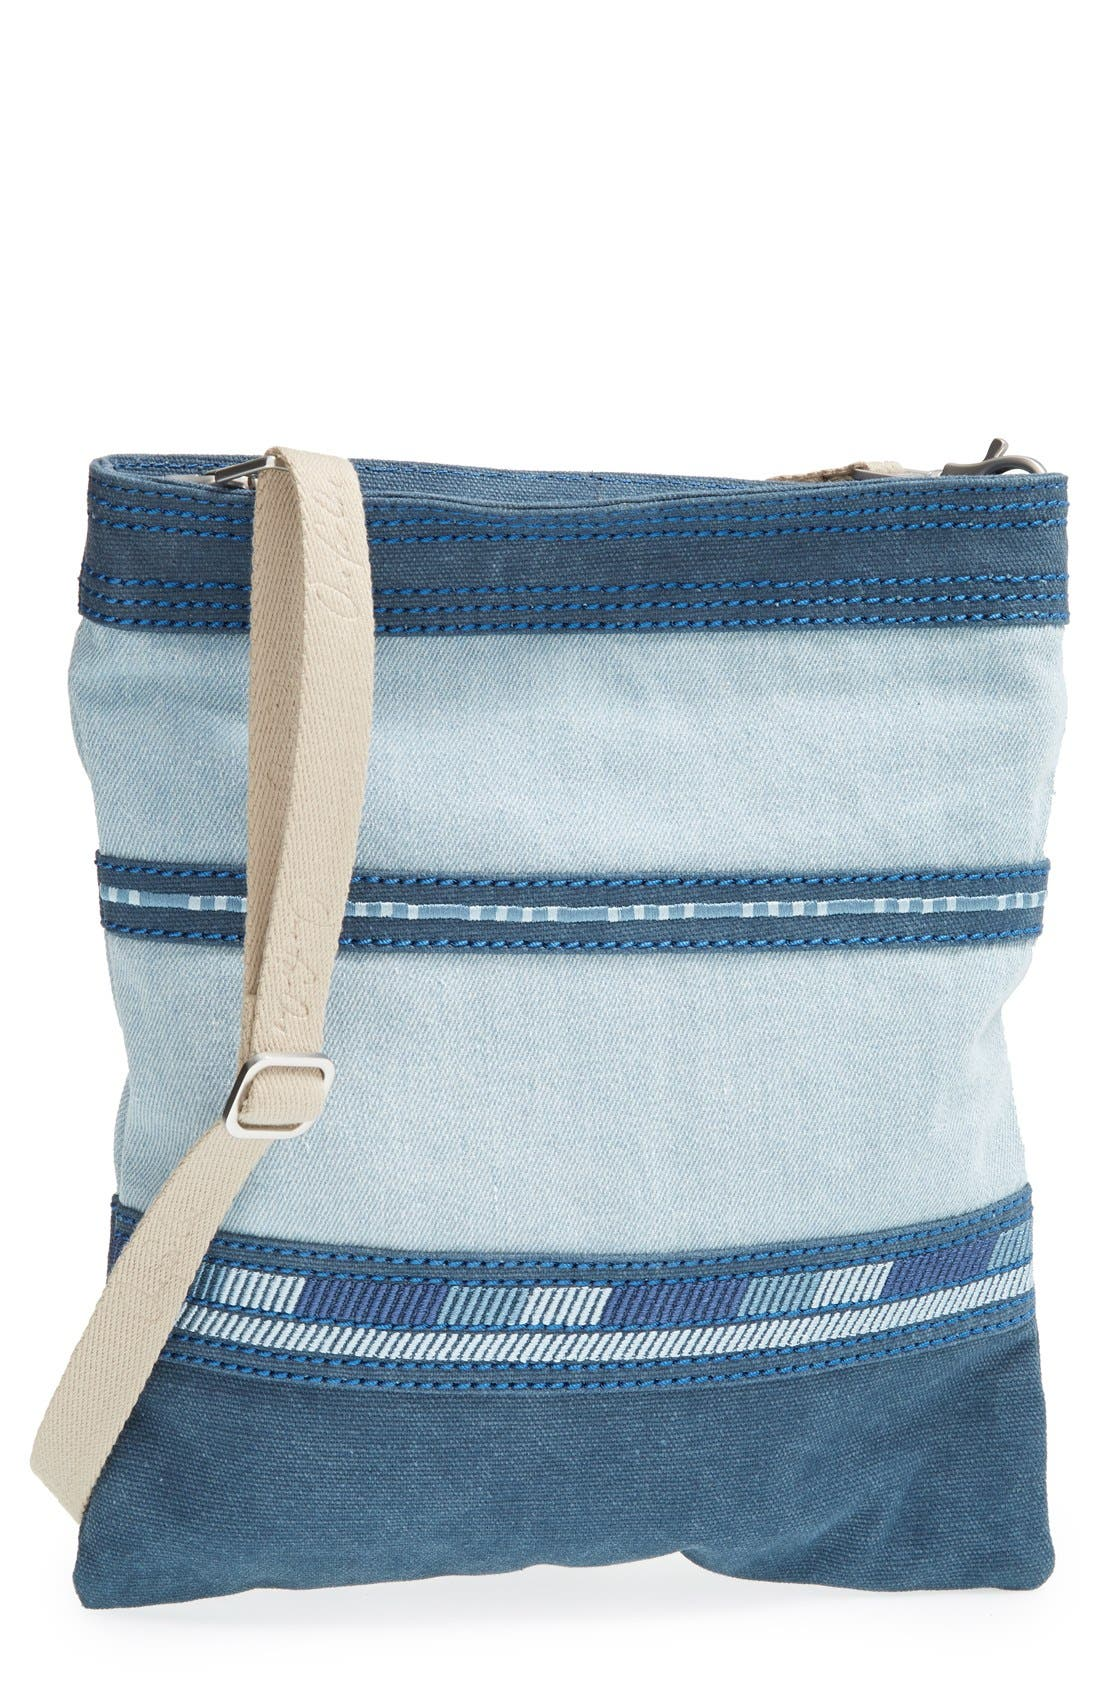 Alternate Image 1 Selected - TOMS Stripe Denim Crossbody Bag